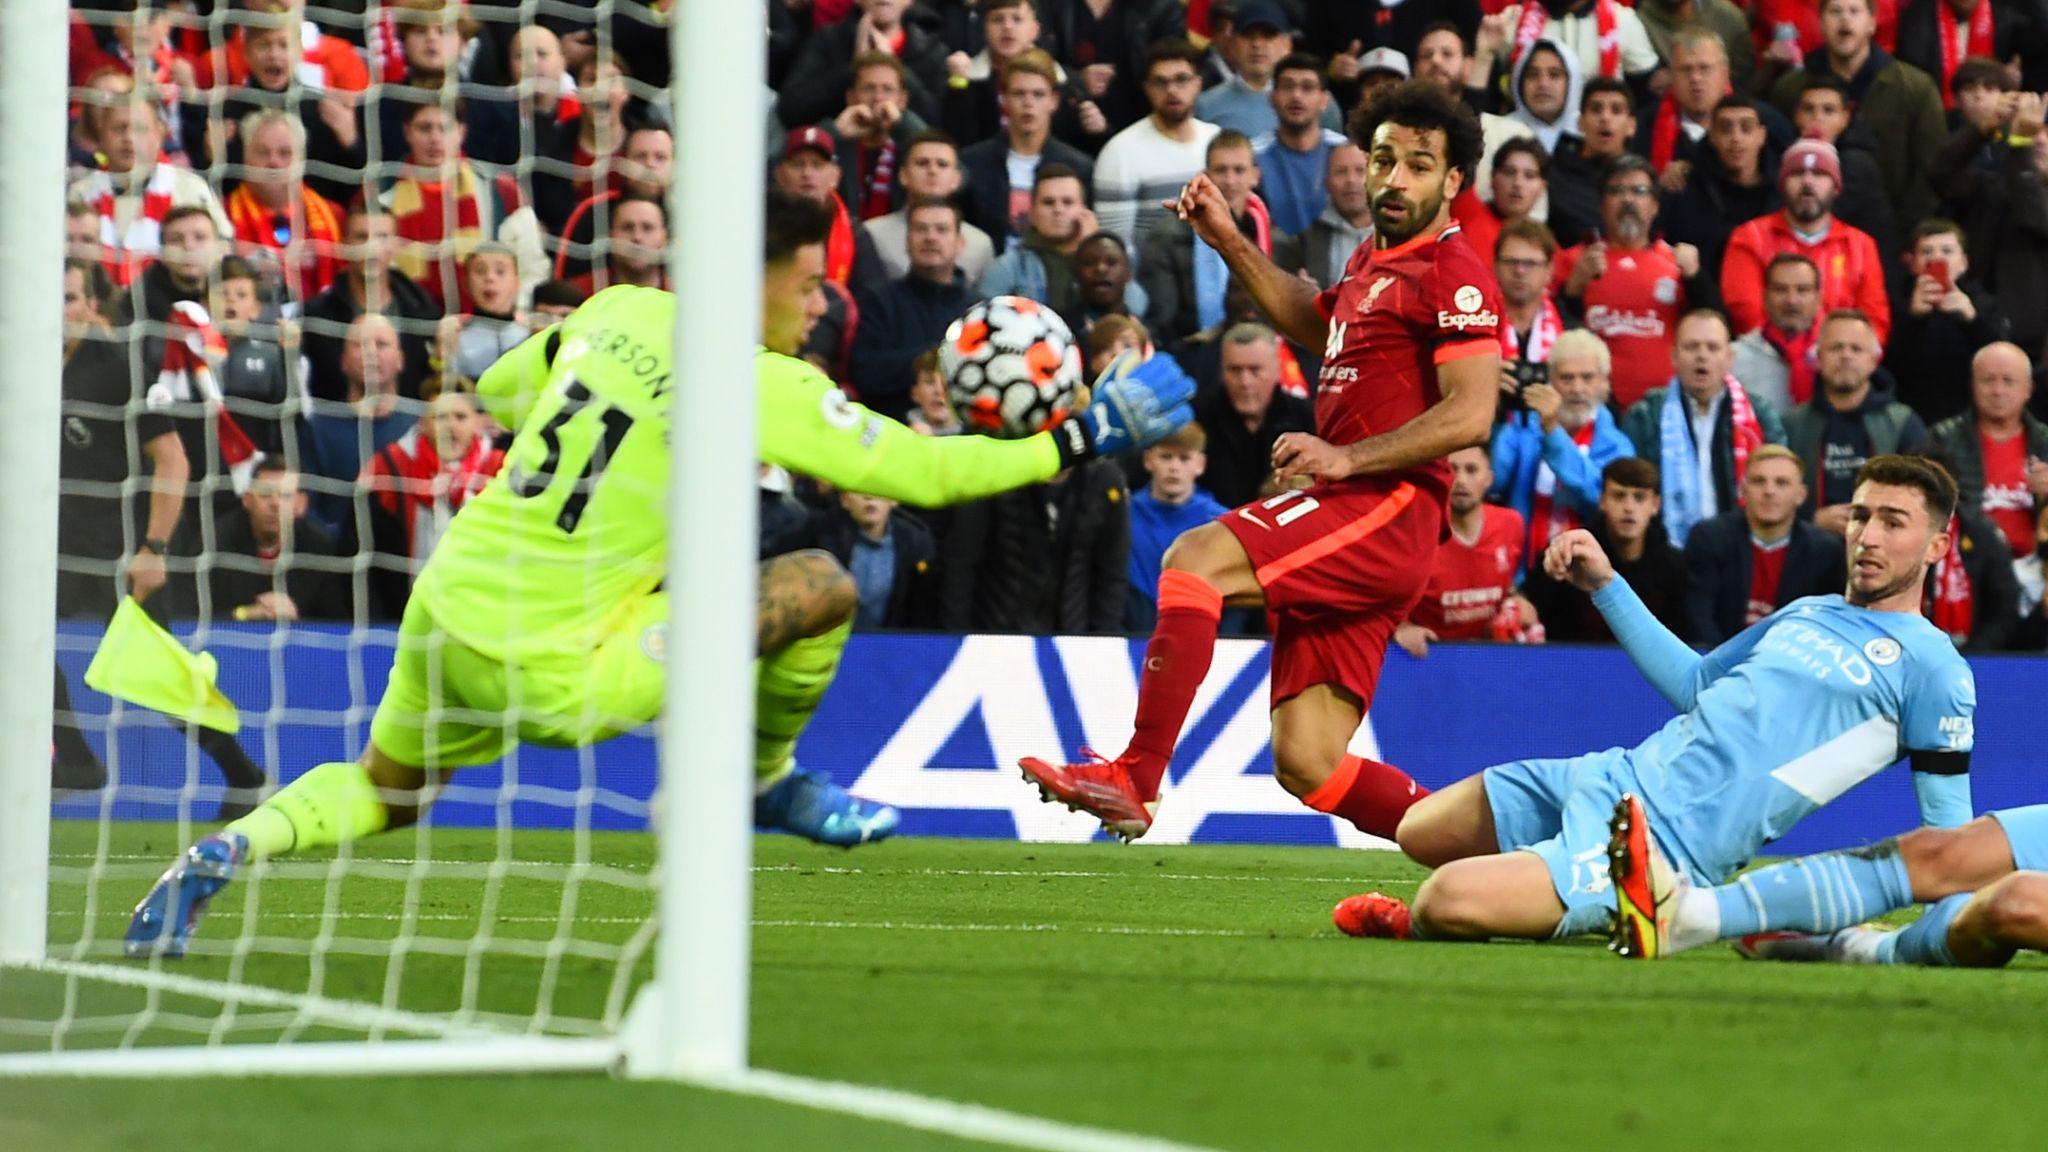 Liverpool 2-2 Man City: Mohamed Salah scores stunning goal as Premier  League title rivals go toe to toe at Anfield   Football News   Sky Sports